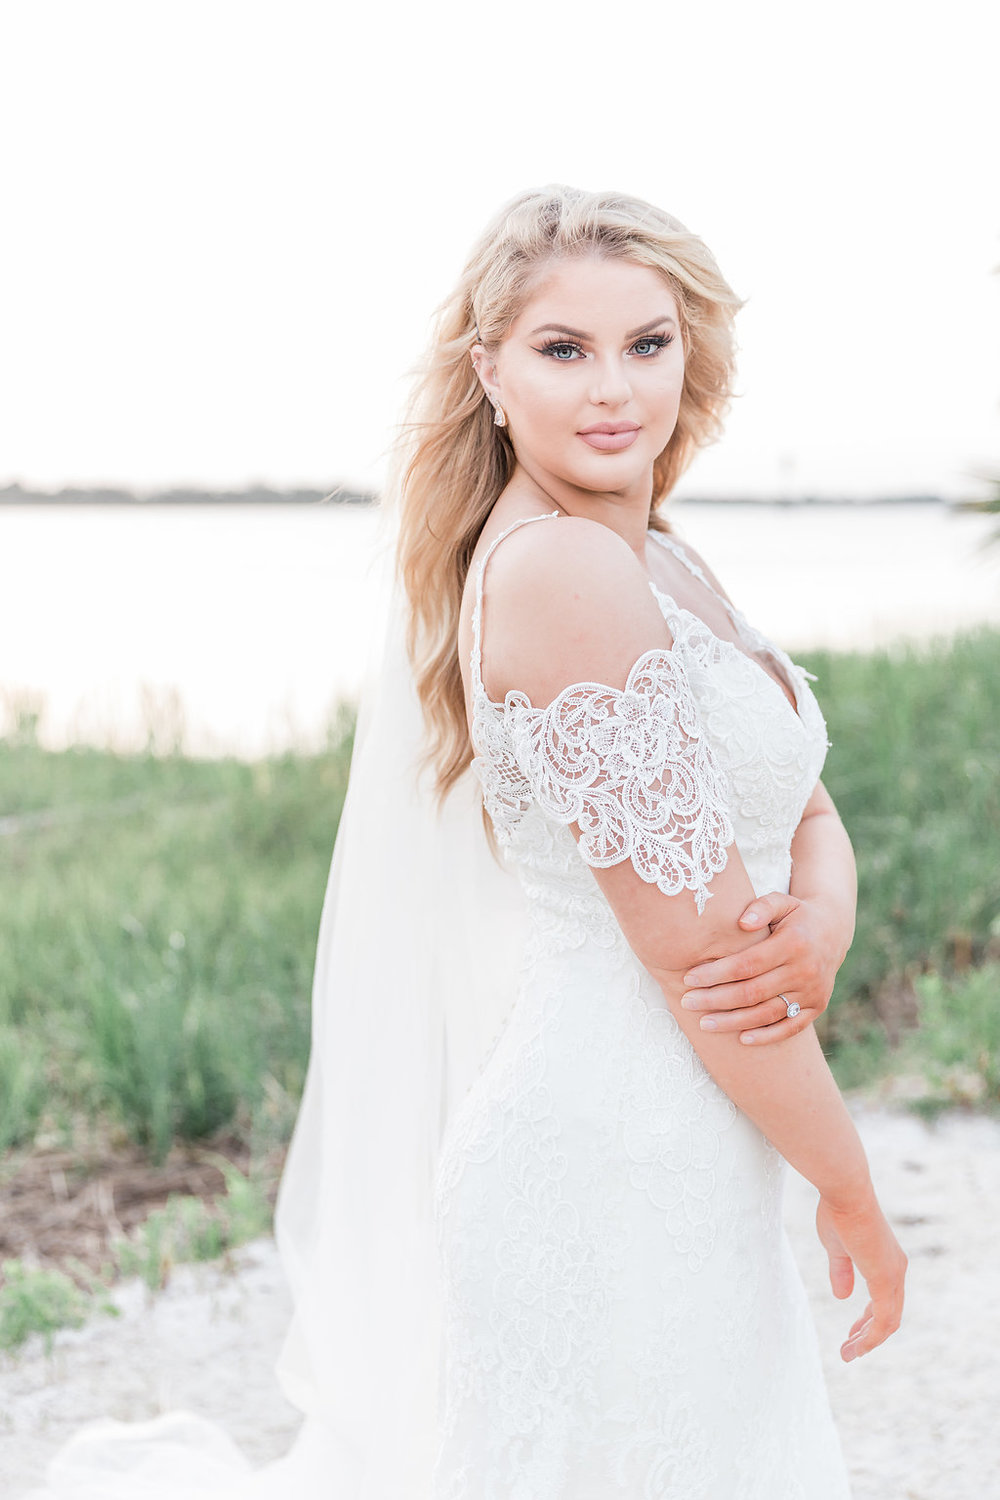 savannah-bridal-shop-beachy-bridal-glam-beach-wedding-looks-and-inspiration-southern-lens-photography-maggie-sottero-7.jpg